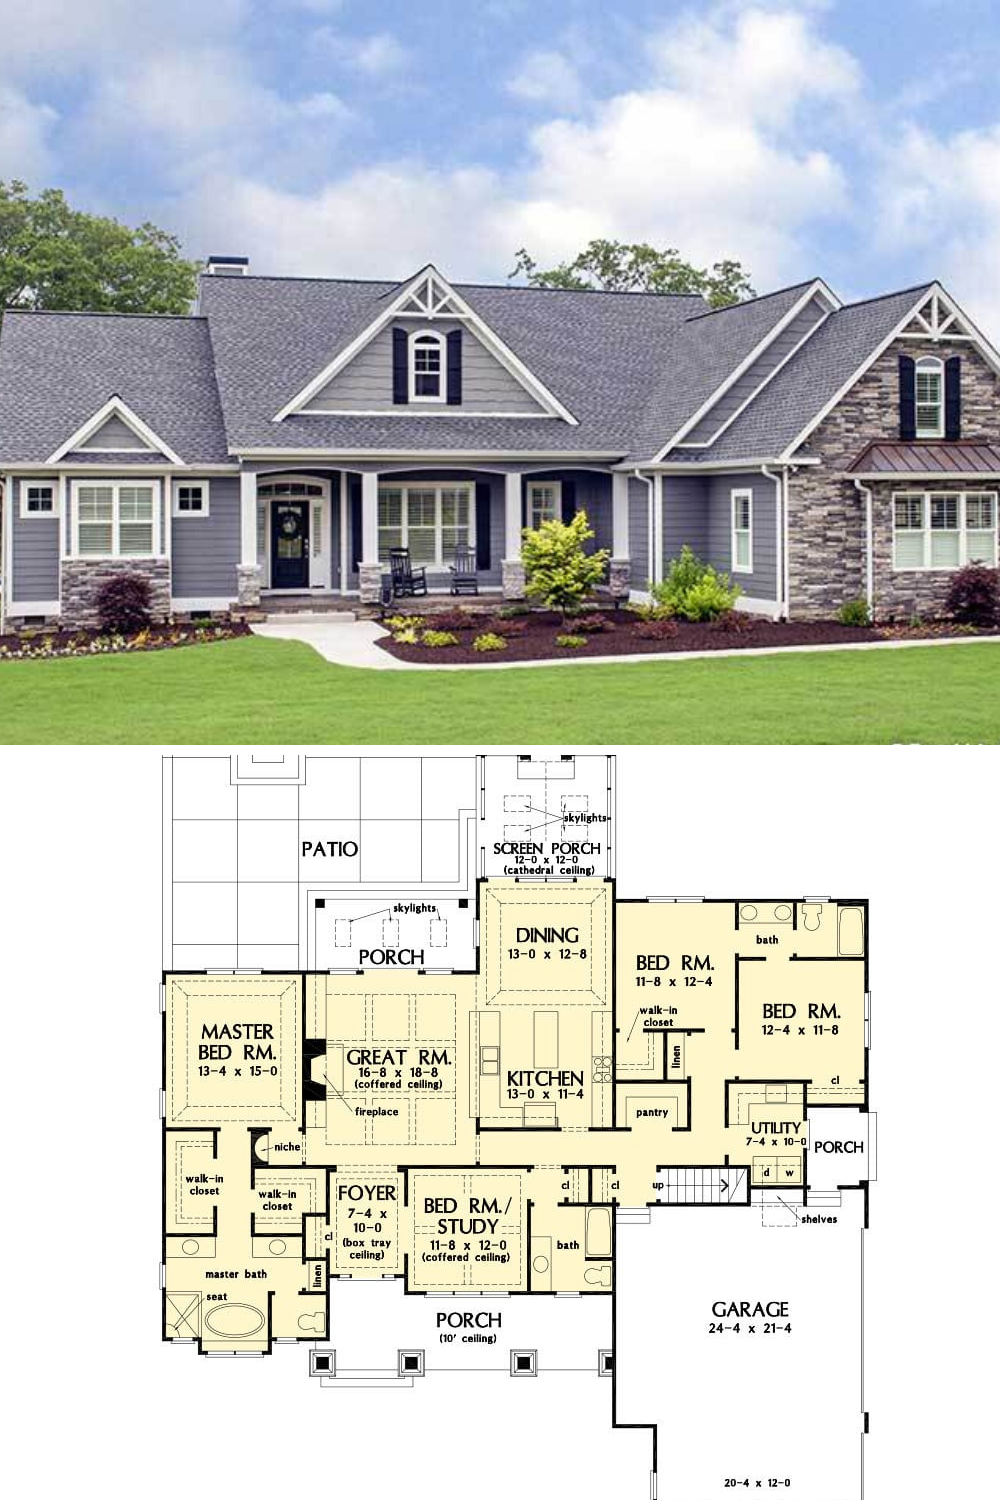 Single Story 4 Bedroom The Lucy Home Floor Plan Craftsman House Plans New House Plans Craftsman House